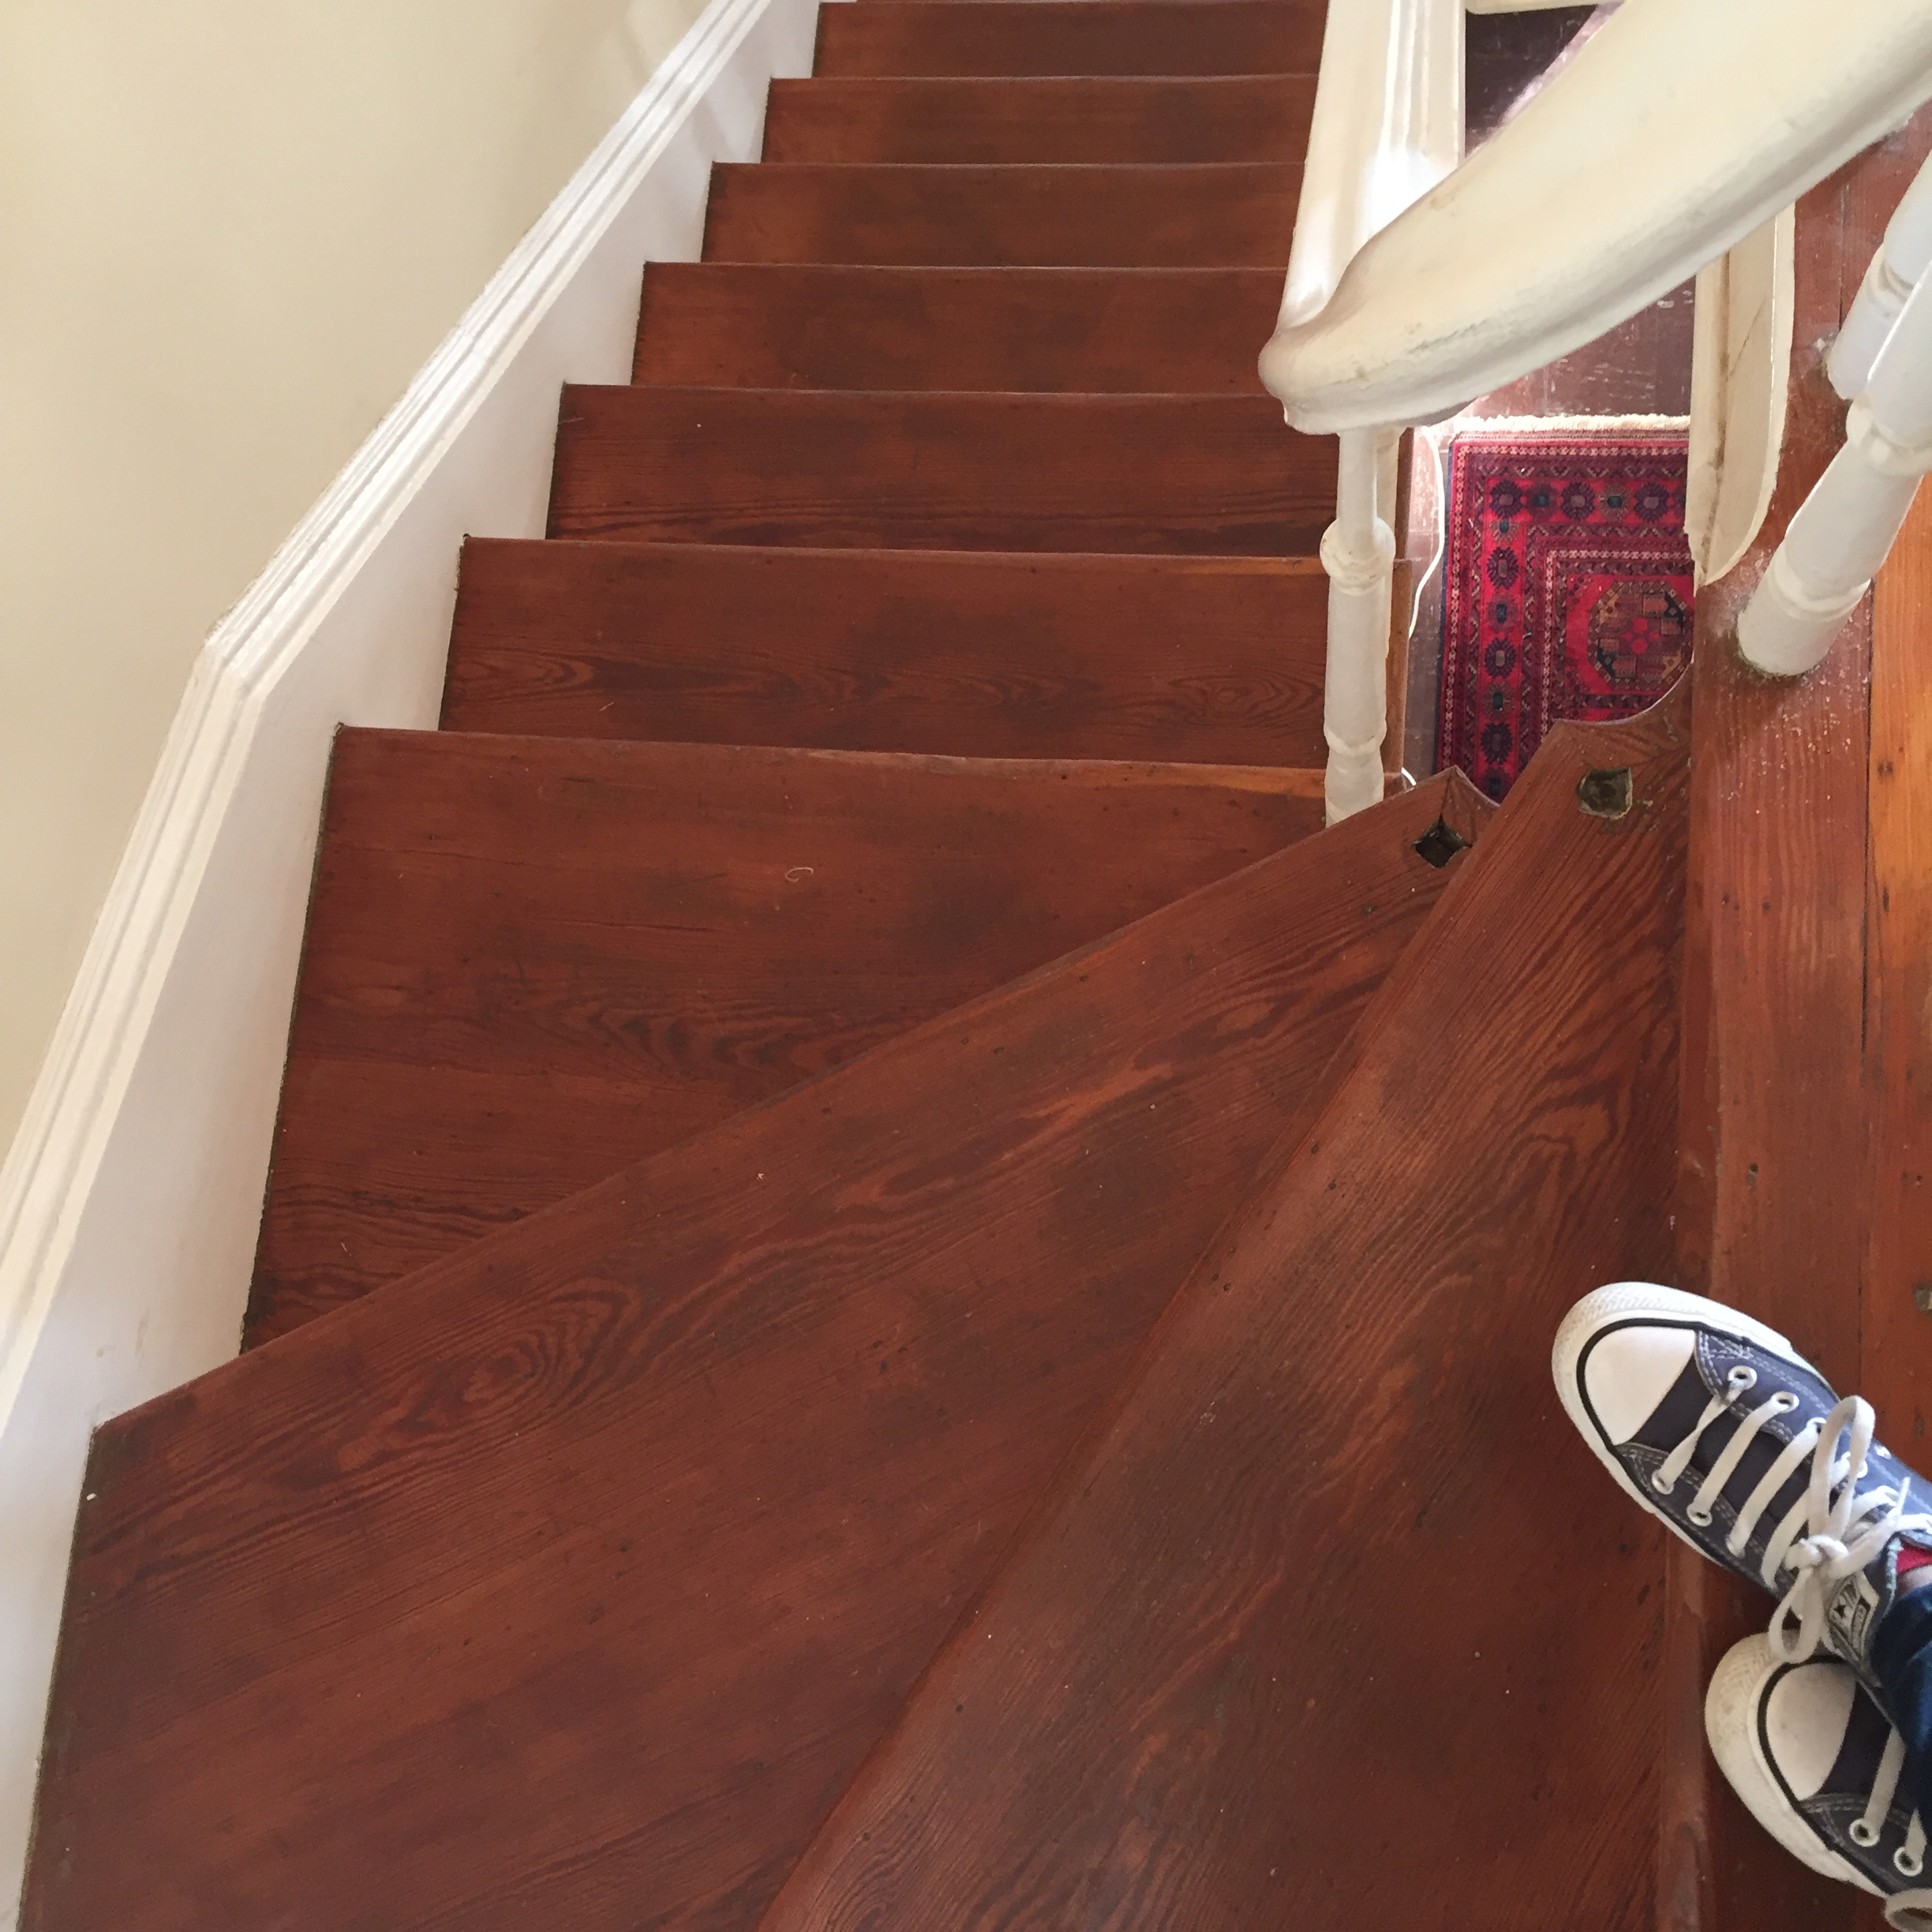 A picture of a slightly spiraled staircase from the top landing and two converse shoes.